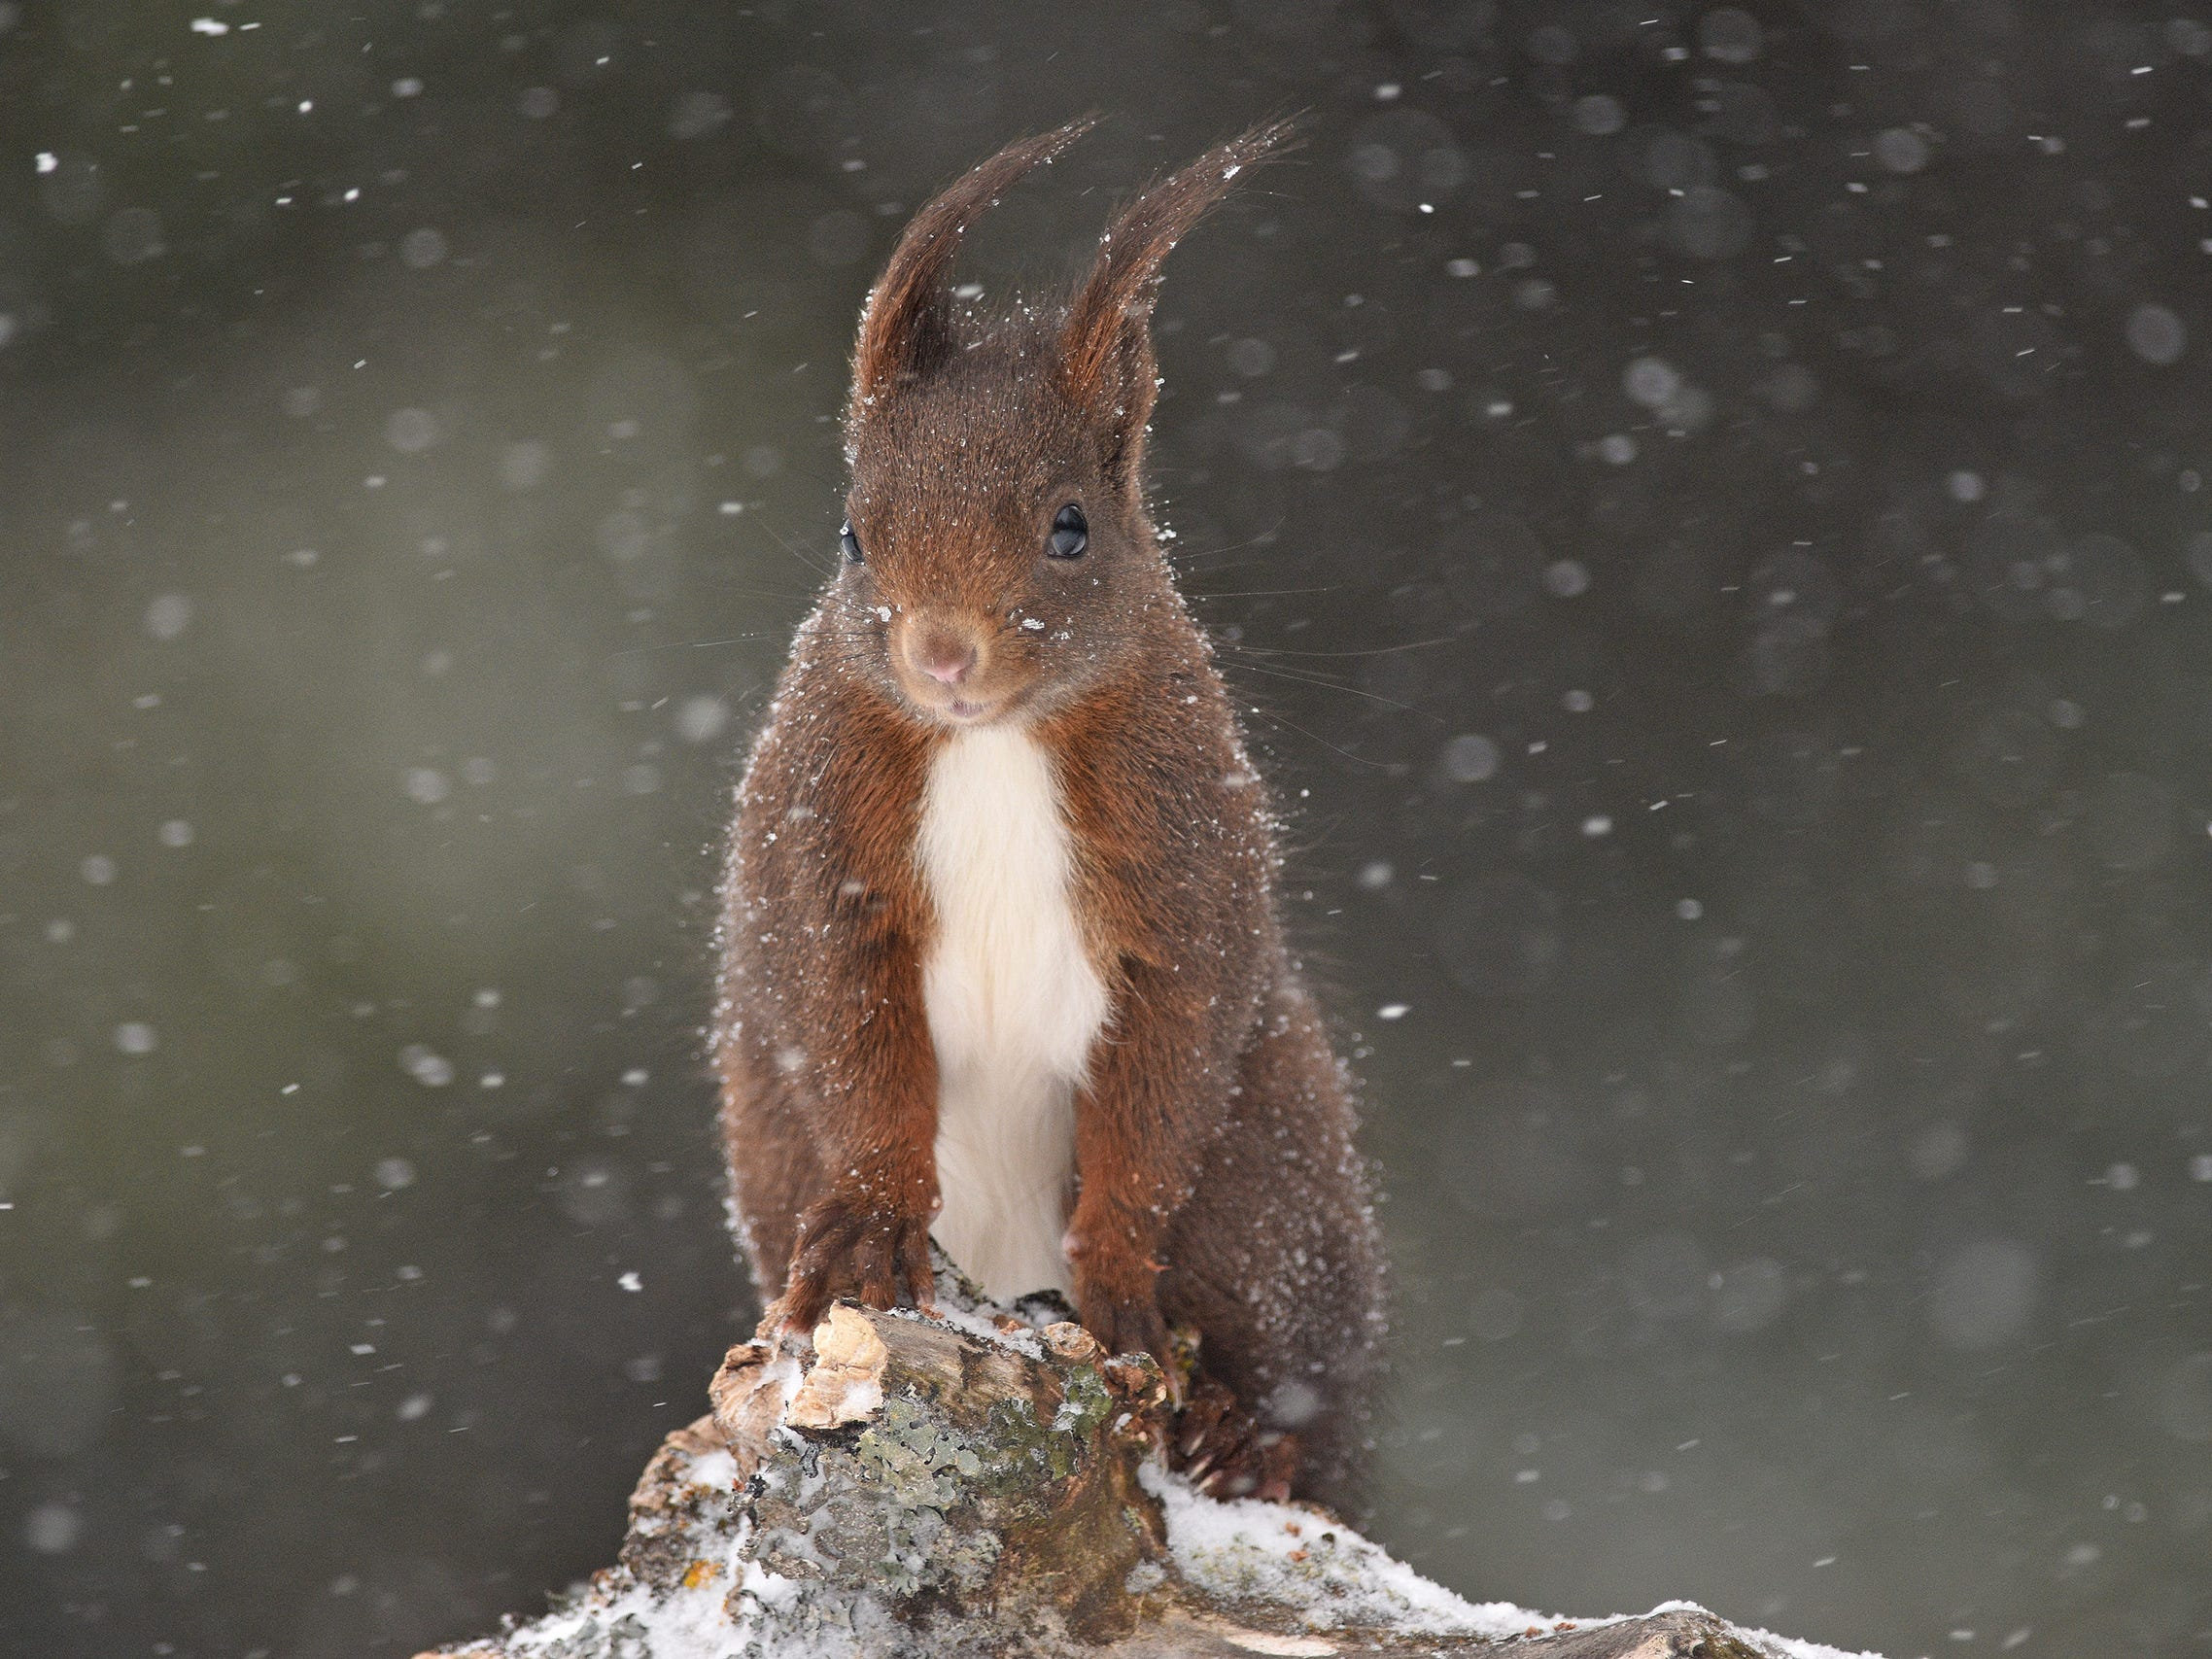 Under the Snow by Audren Morel, France -- Unafraid of the snowy blizzard, this squirrel came to visit Audren as he was taking photographs of birds in the small Jura village of Les Fourgs, France. Impressed by the squirrel's endurance, he made it the subject of the shoot. -- Nikon D7200 + Nikon 300mm f4 lens; 1/1600 sec at f4 (-0.7e/v); ISO 500.